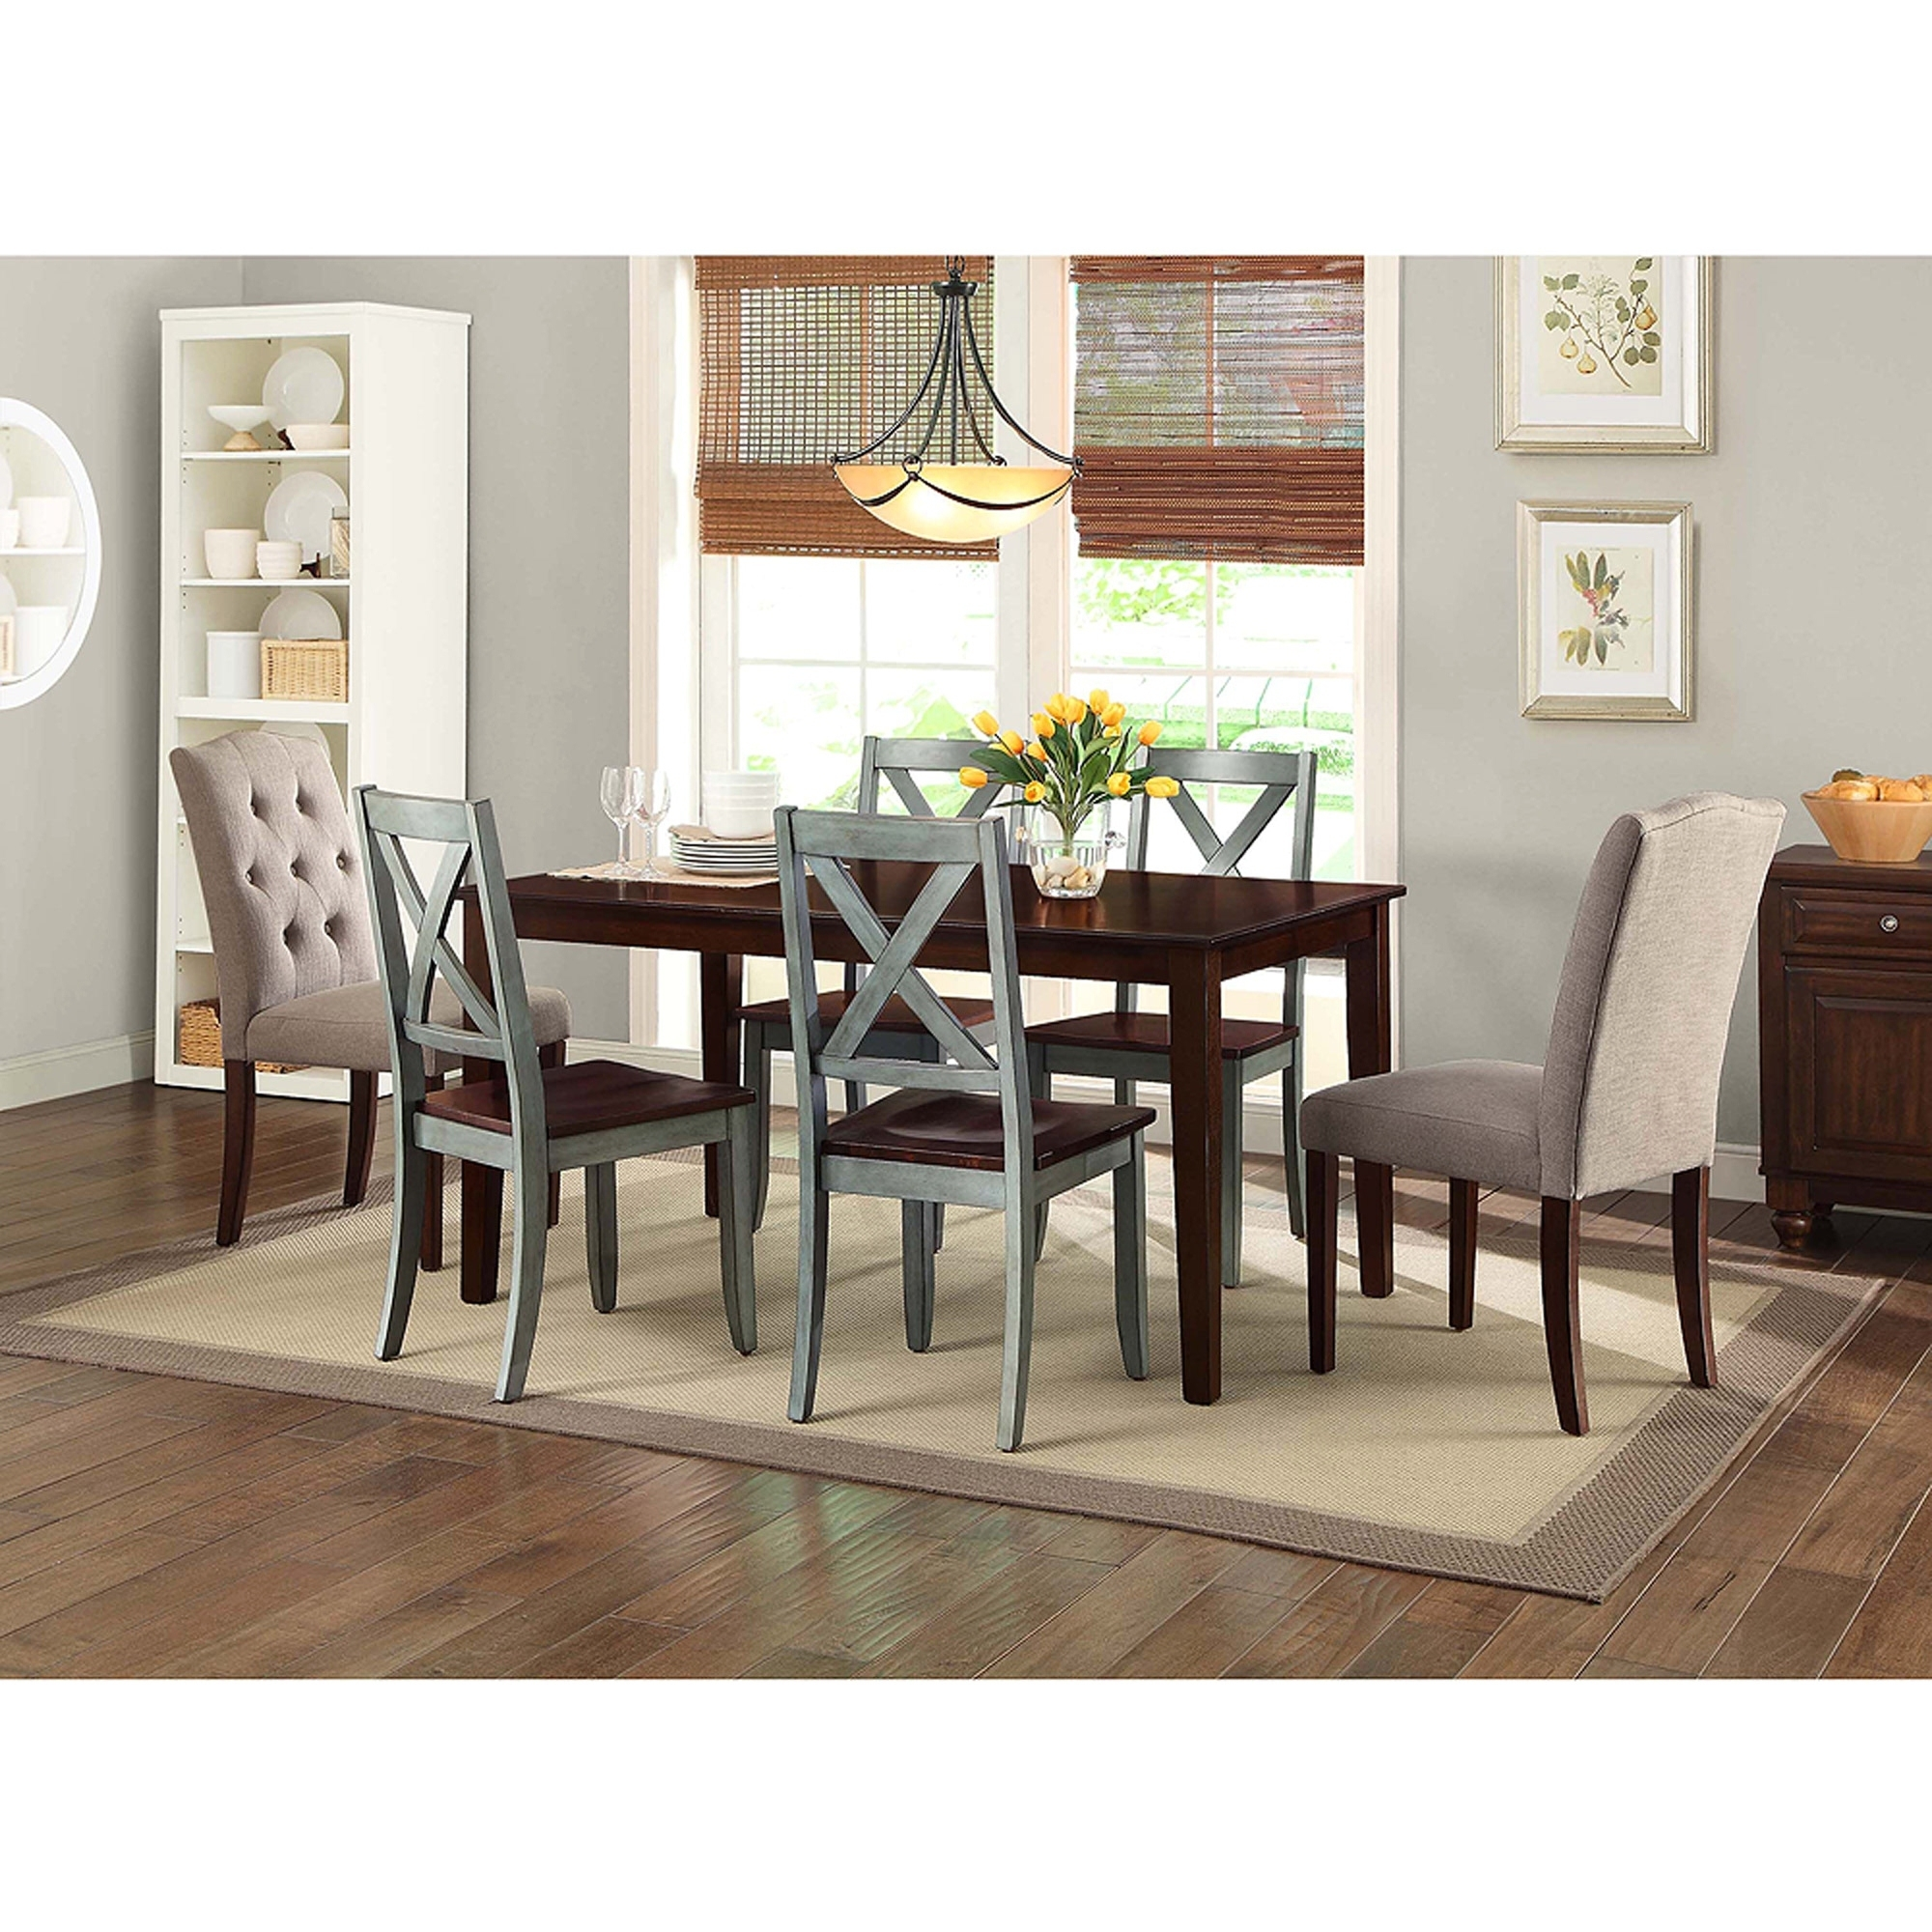 Breathtaking 7 Piece Dining Set With Bench Tips | Bank Of Ideas Within Current Partridge 7 Piece Dining Sets (Image 5 of 20)